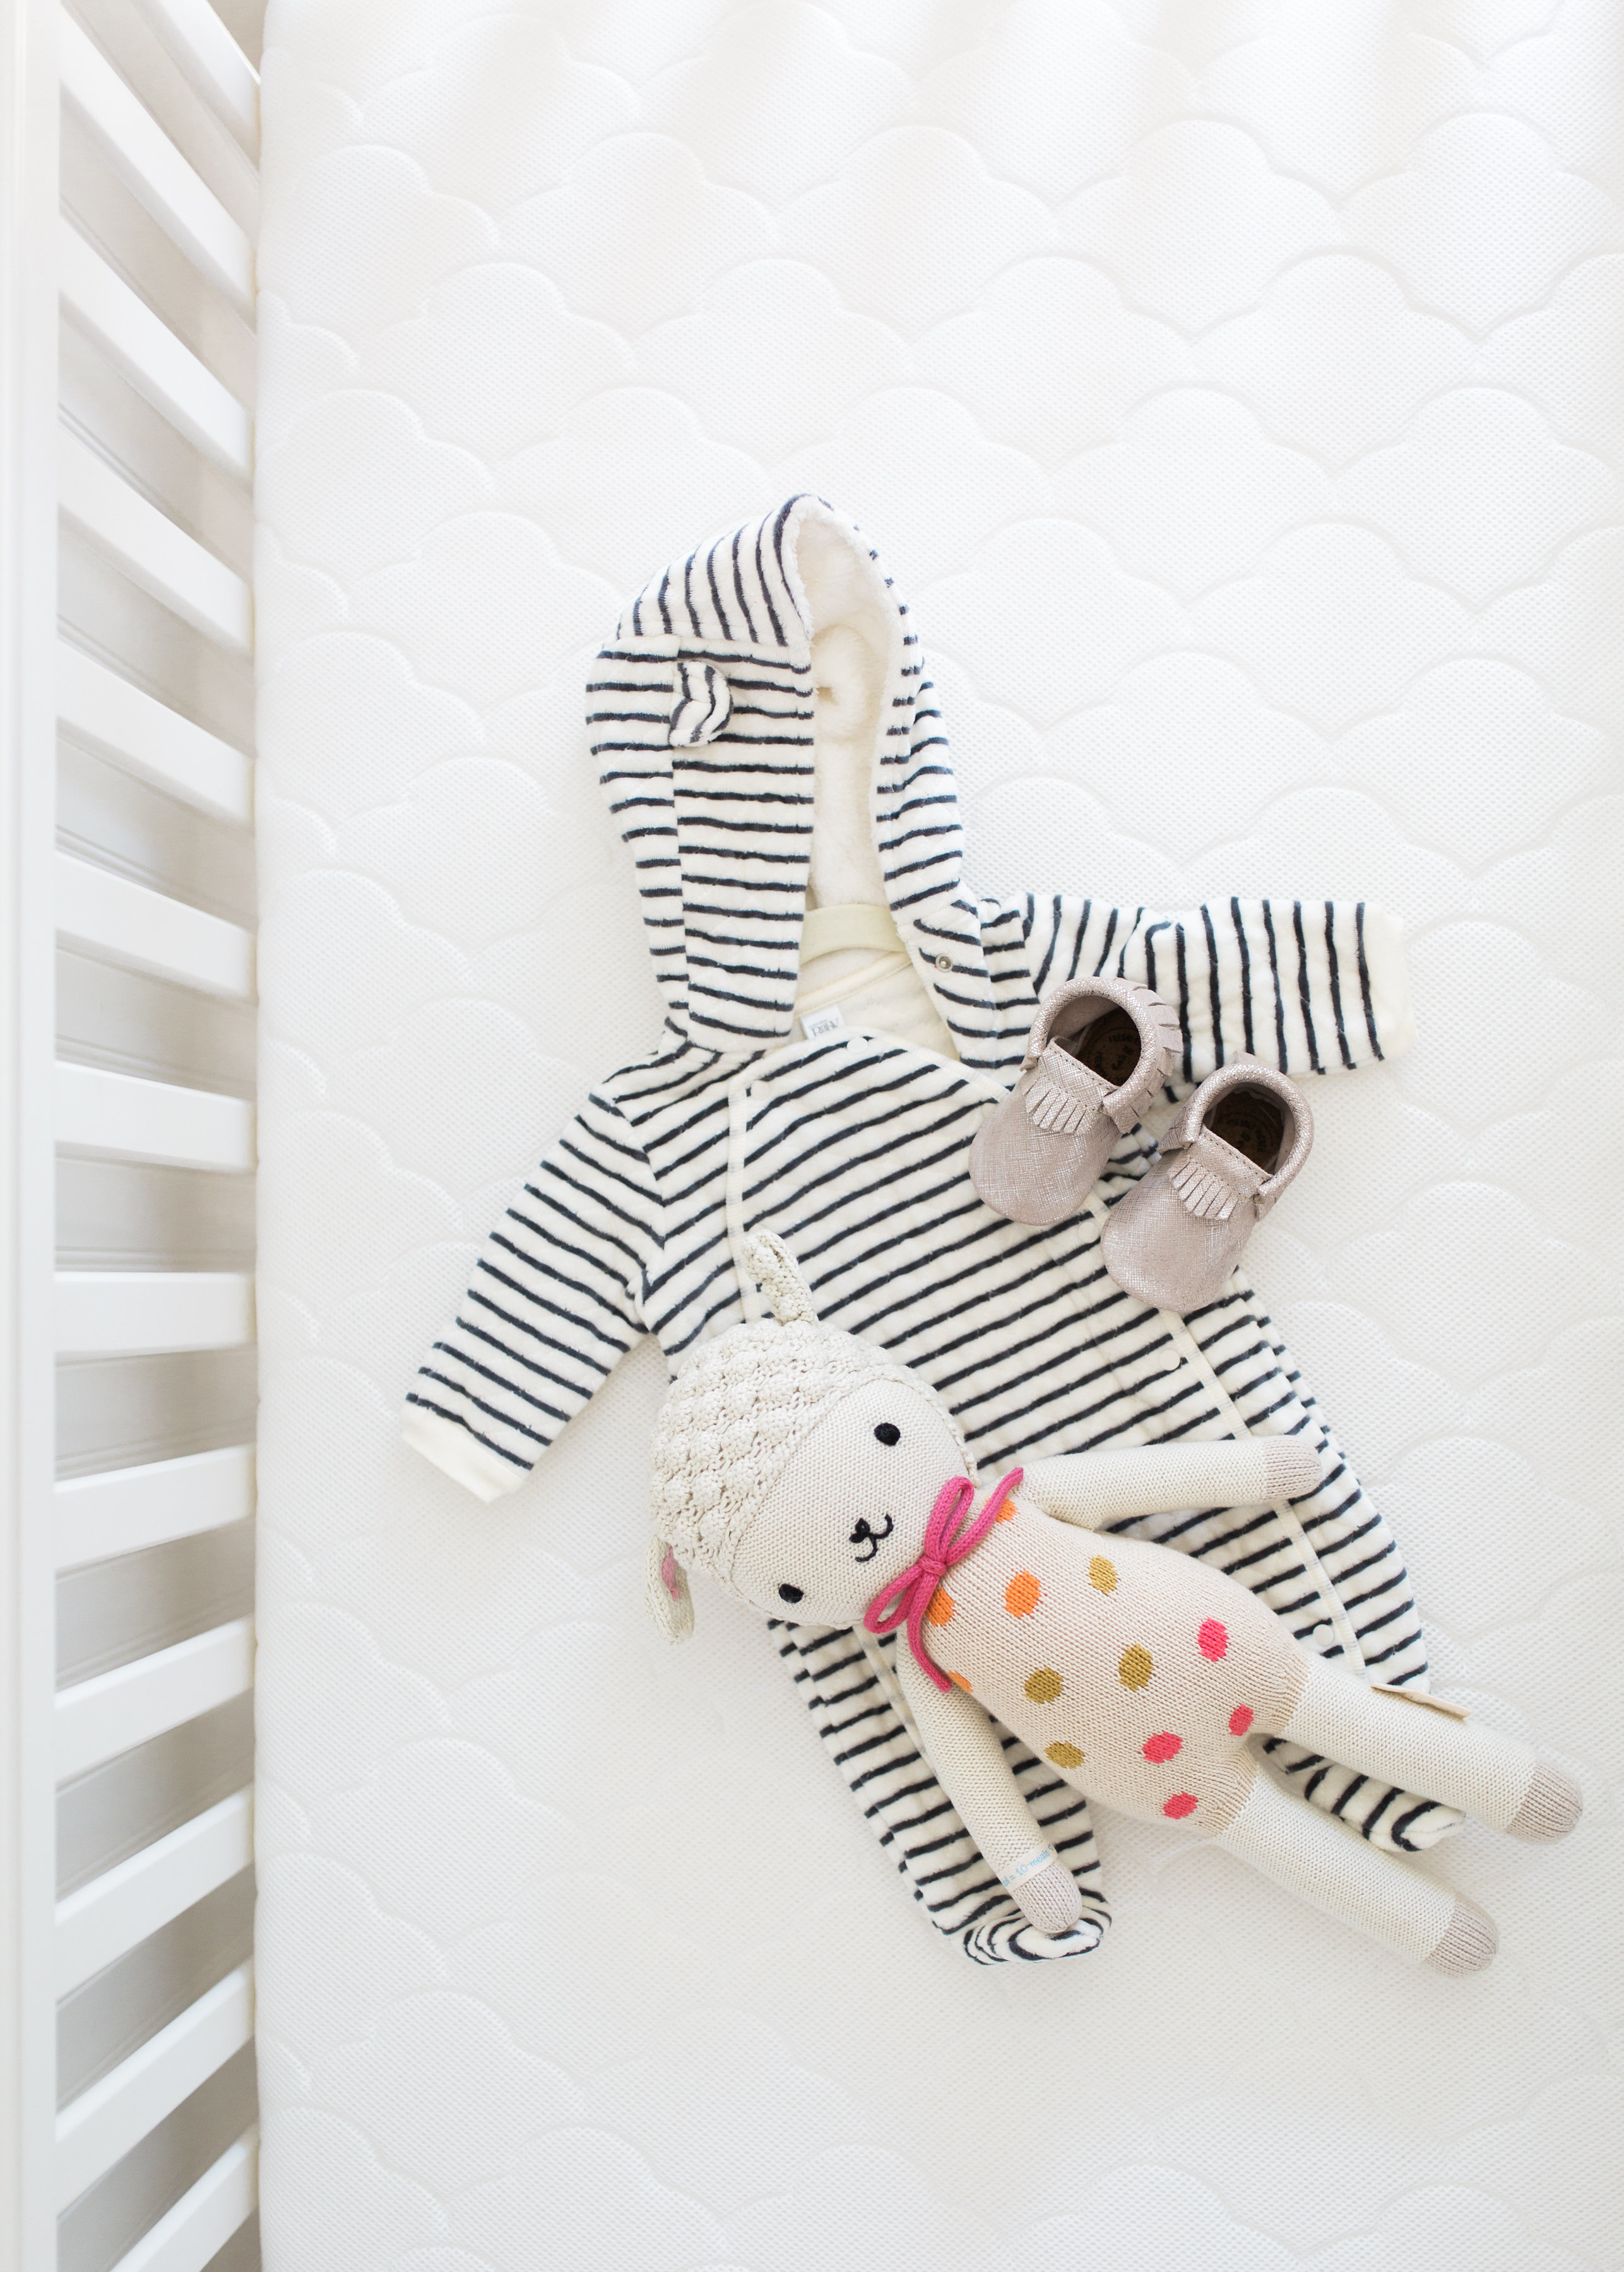 Newton Baby Crib Mattress - Favorites Lately: Newton Baby Crib Mattress by North Carolina style blogger Coffee Beans and Bobby Pins